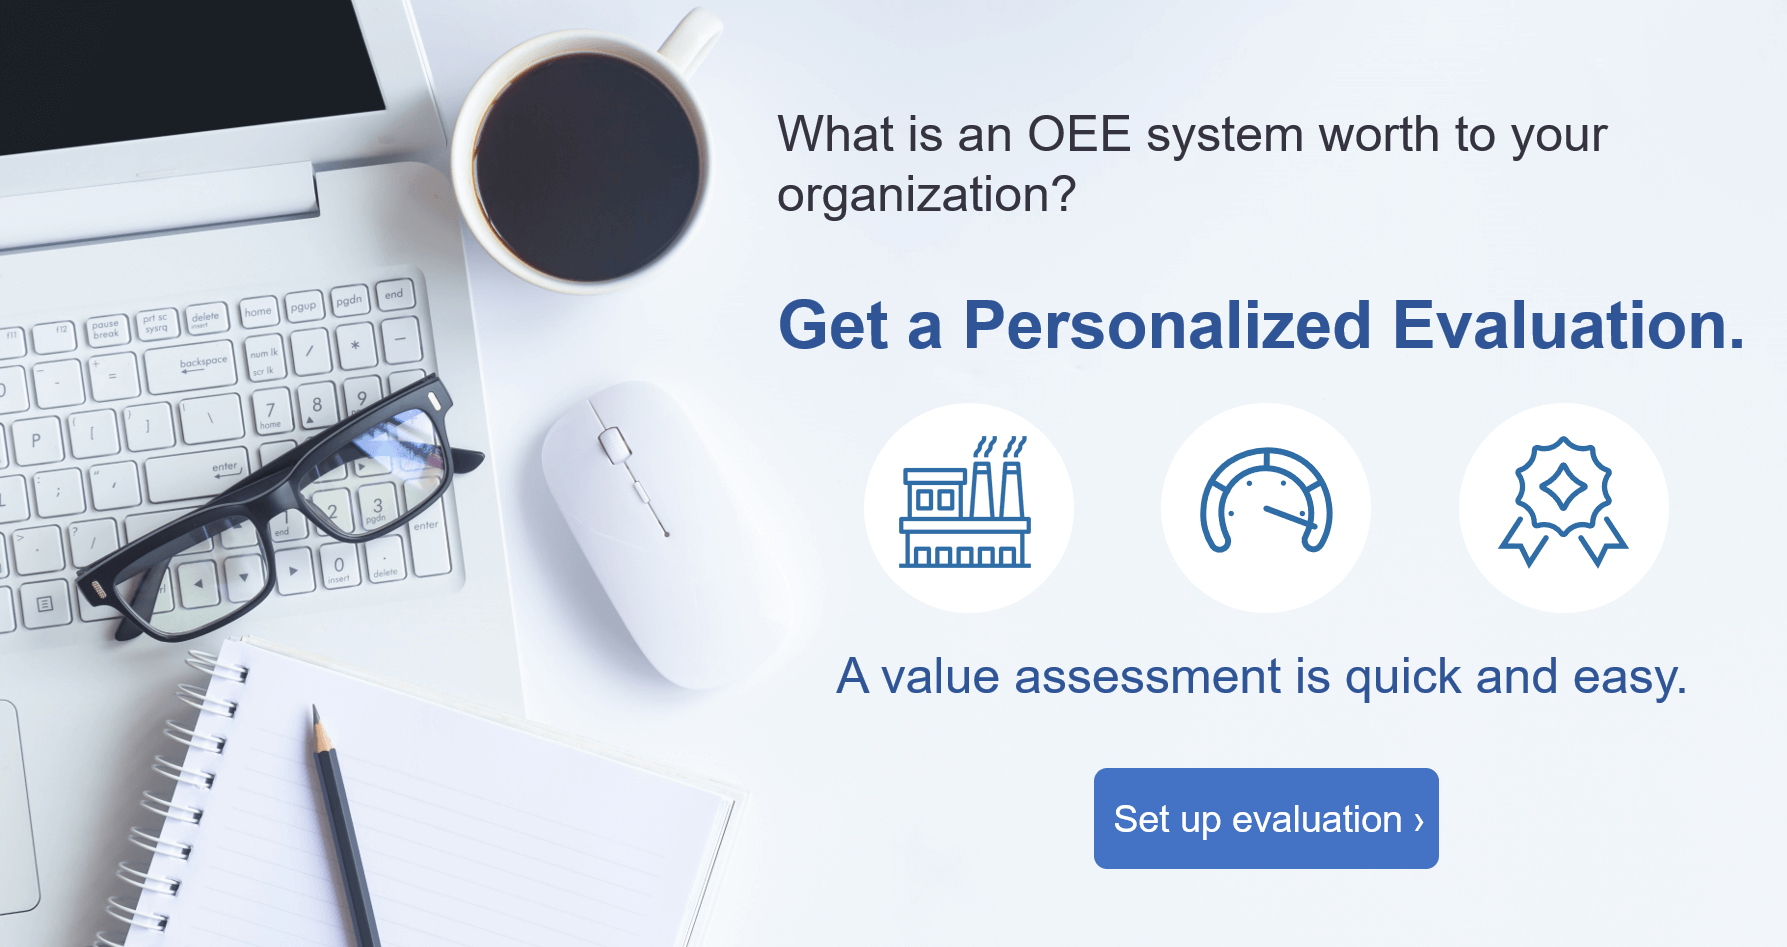 Get higher OEE - Set up an OEE Value Assessment